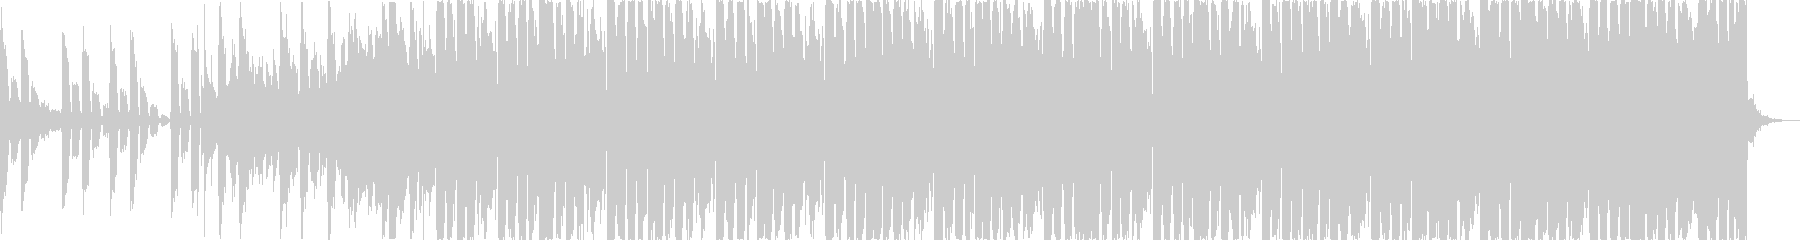 Fashionable corporate commercial EDMb's unreproduced waveform